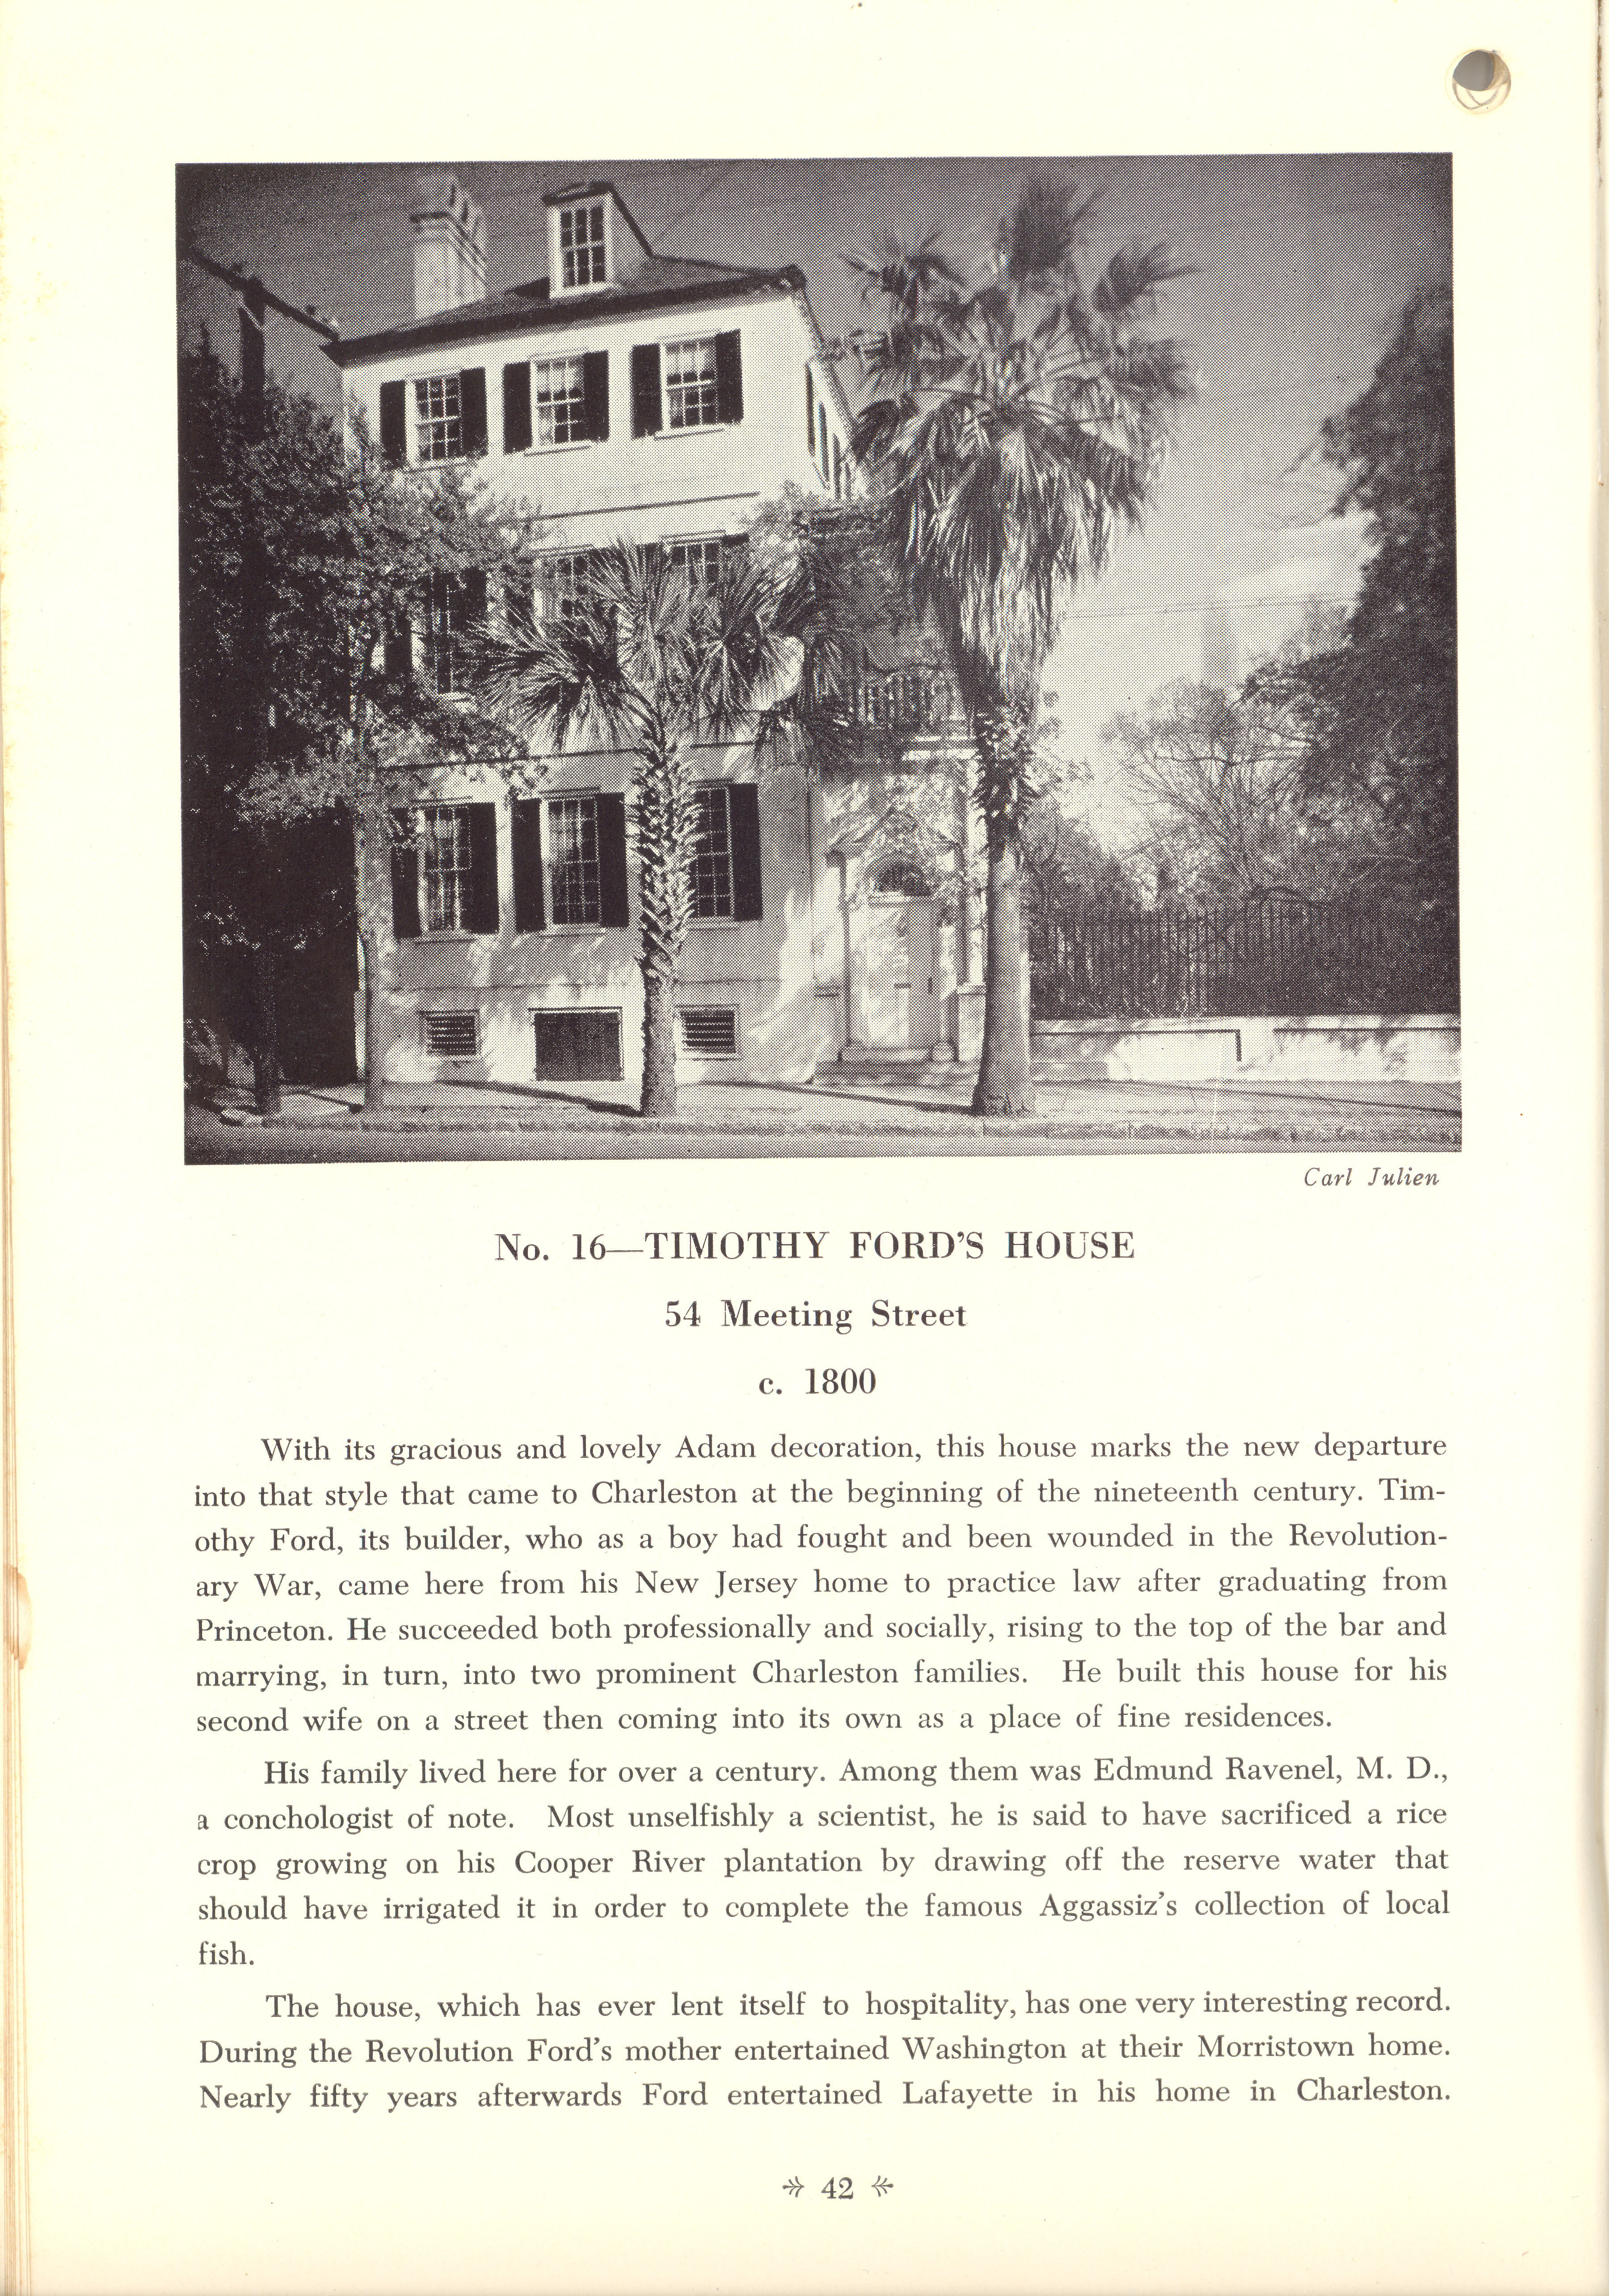 Page 42:  No.16 - Timothy Ford's House, 54 Meeting Street, c. 1800